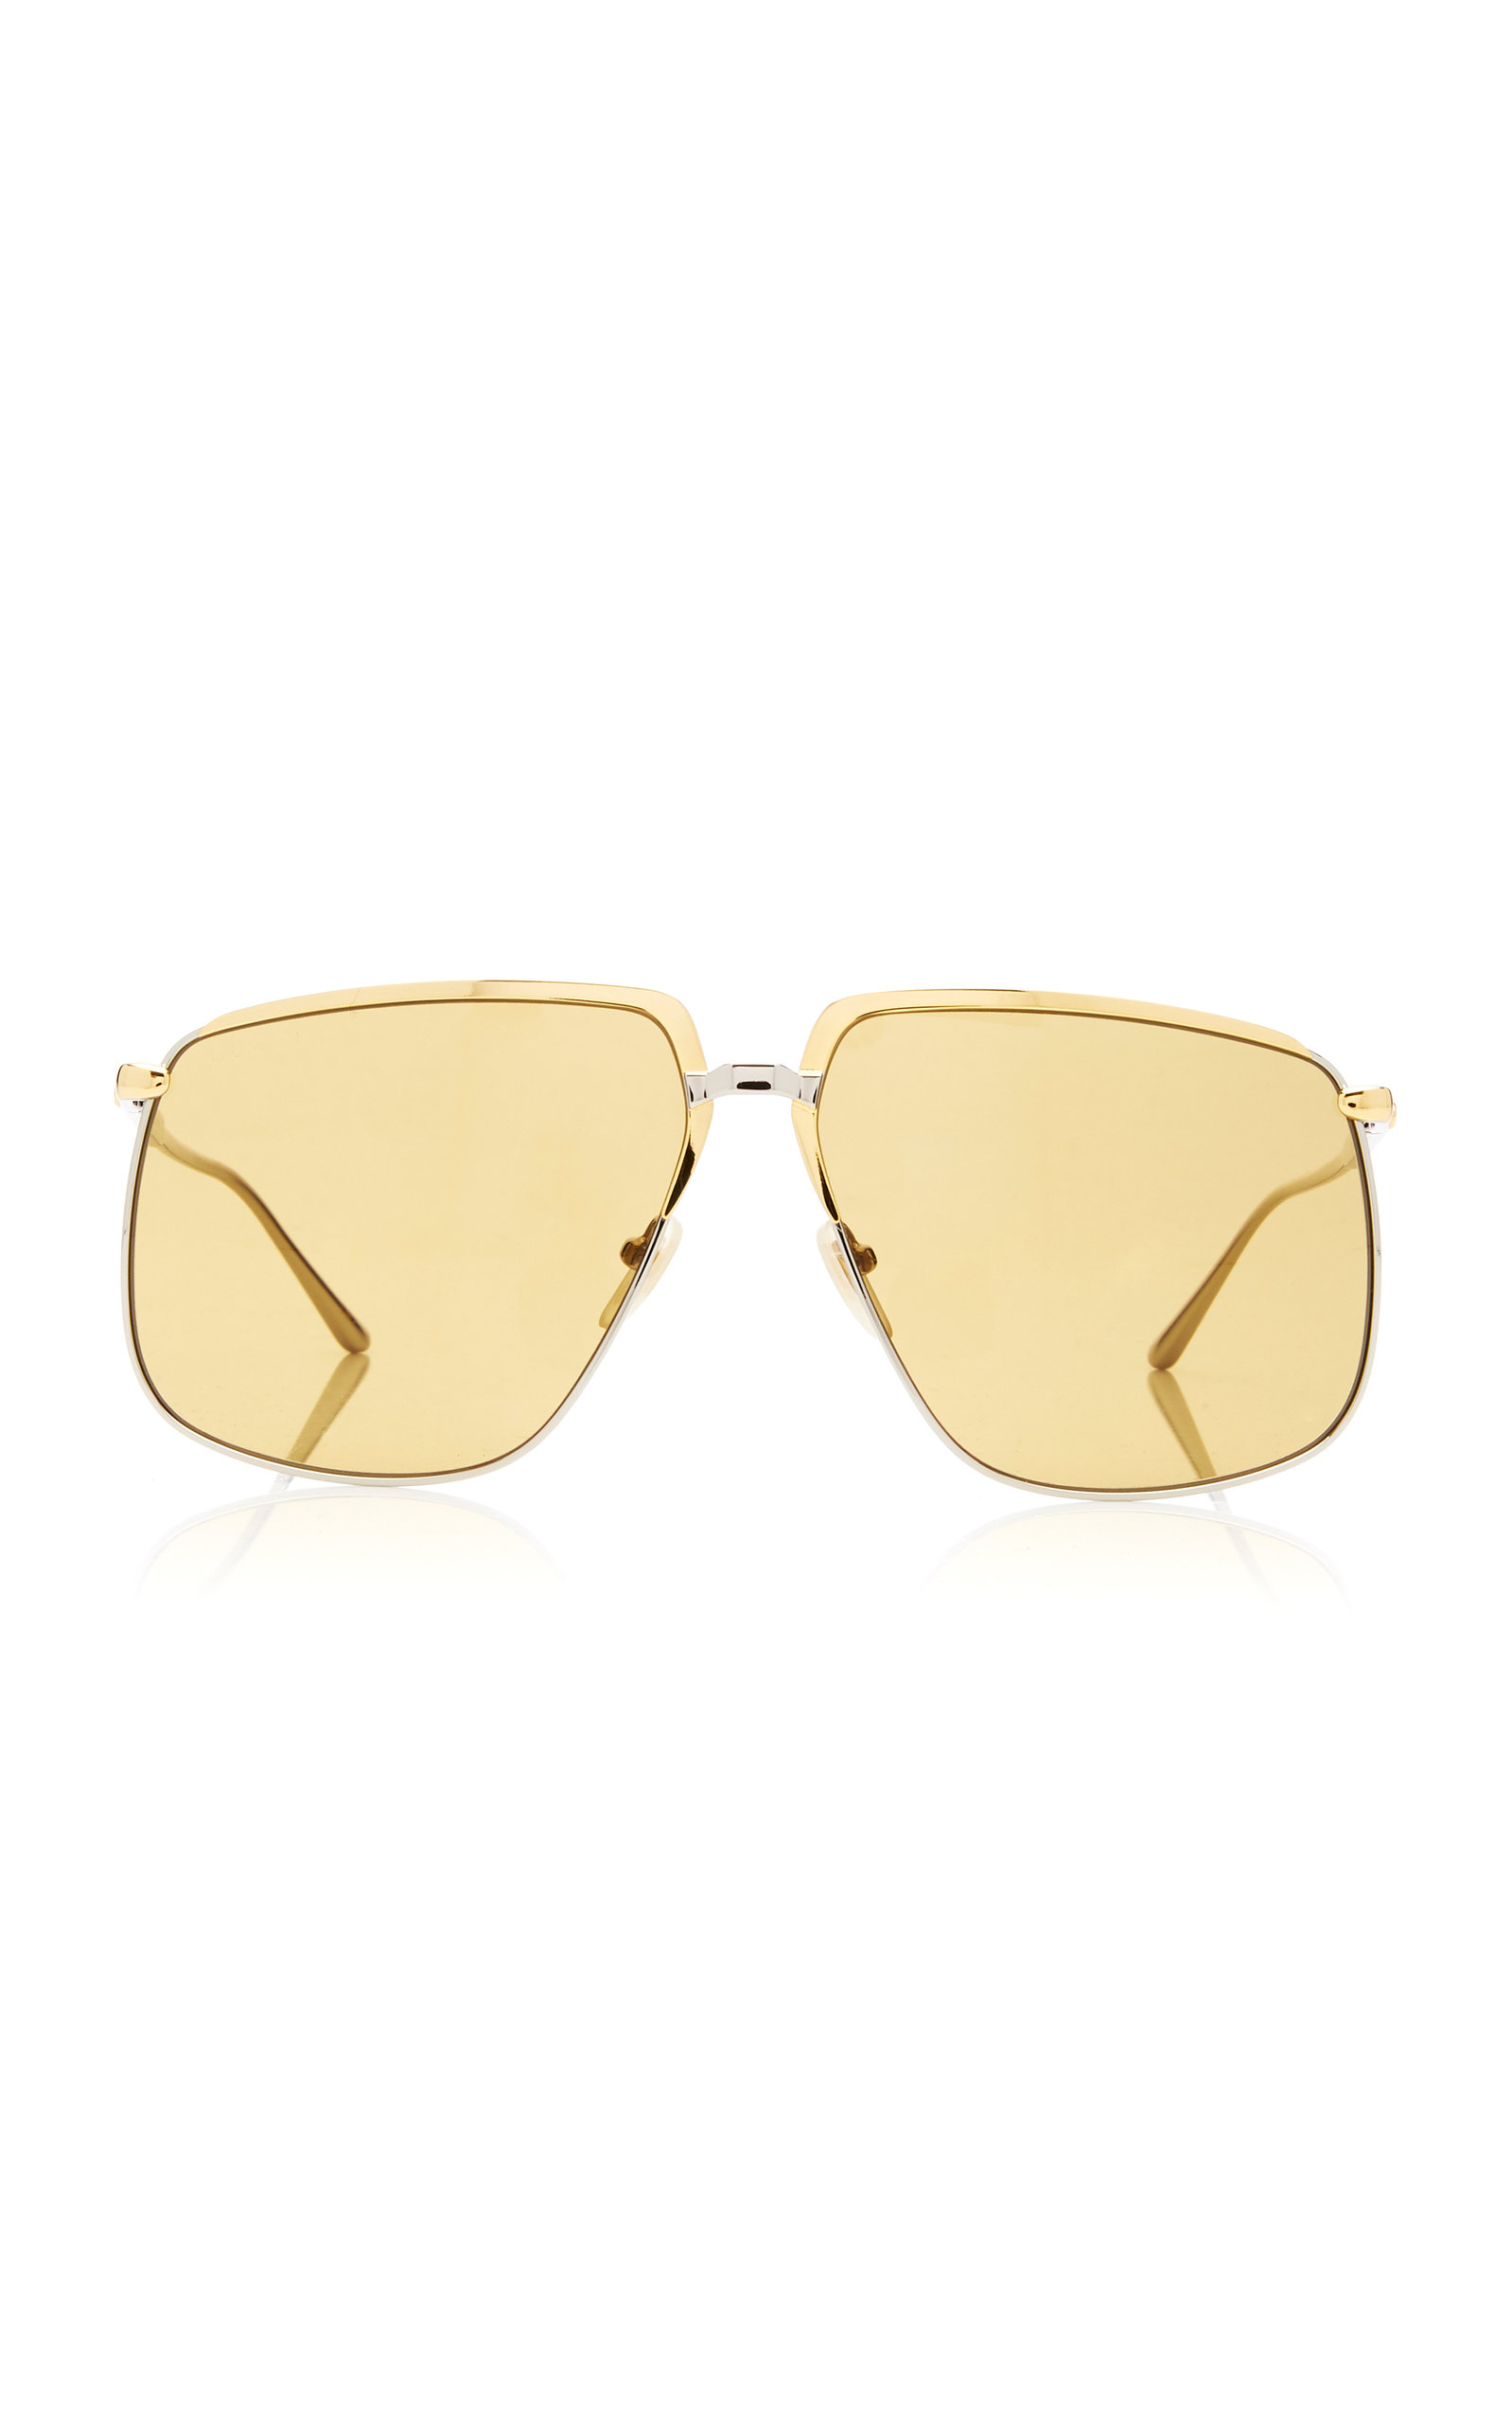 04b6e55e00 Square-Frame Metal Sunglasses by Gucci Sunglasses